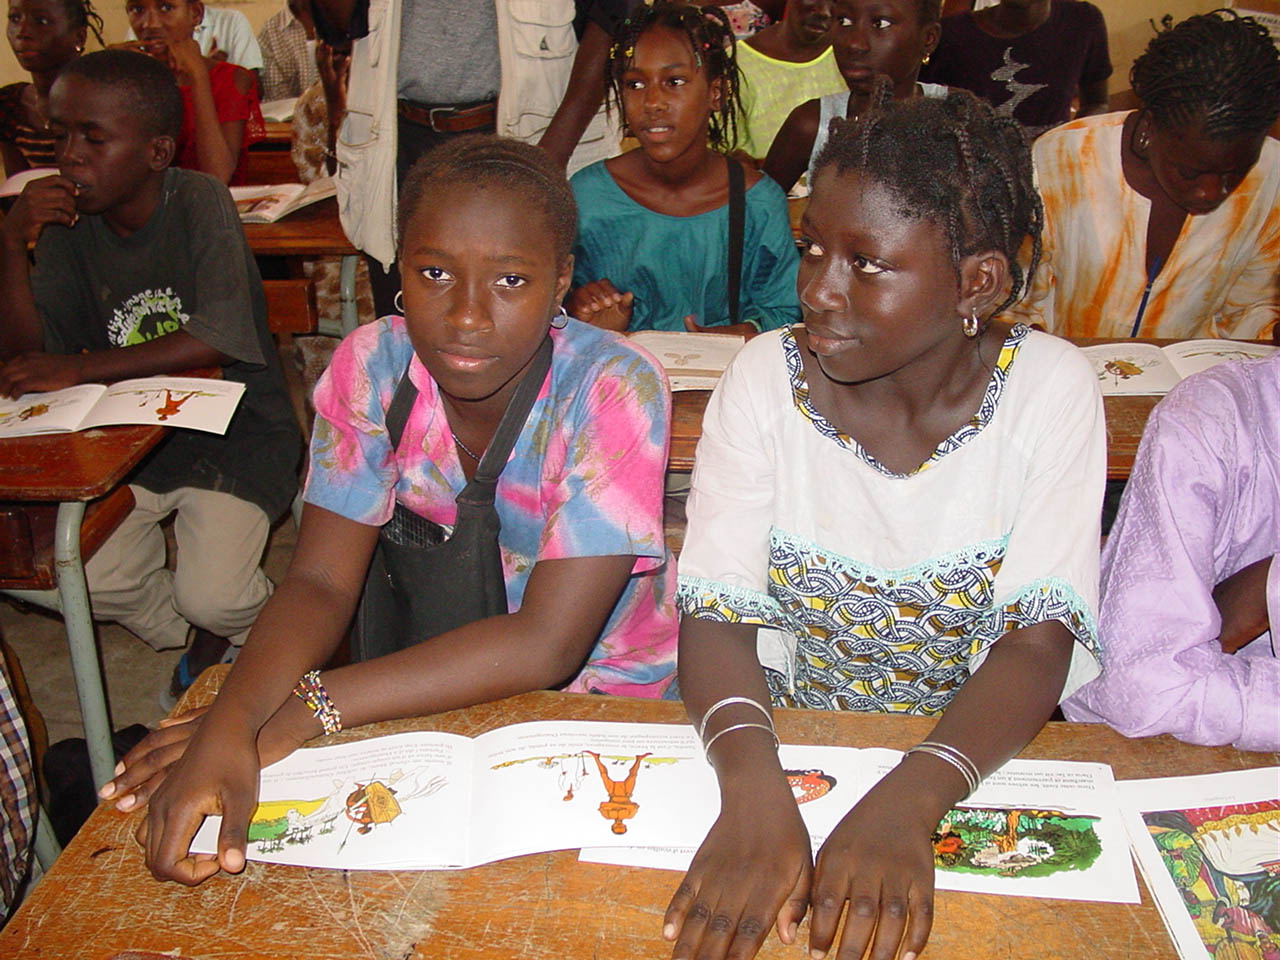 Studenti in Senegal, immagine da Wikipedia.